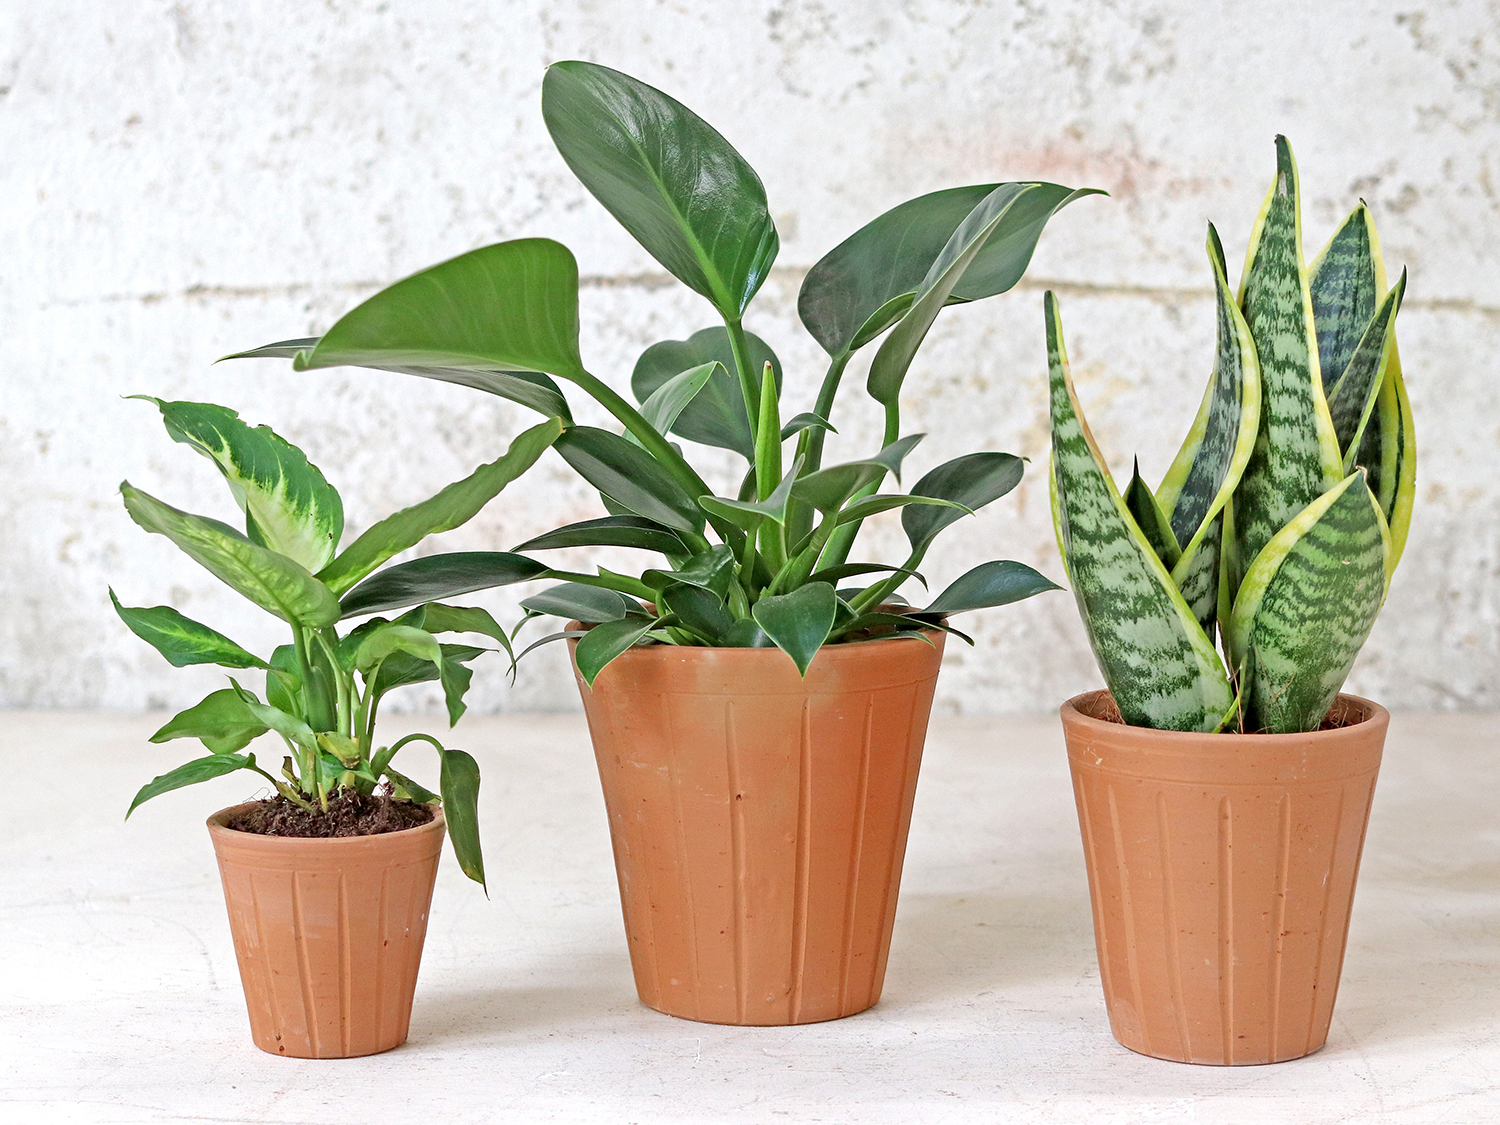 The earthy terracotta texture of our Kolkata Collection plant pots combine both rustic and modern Autumn design.